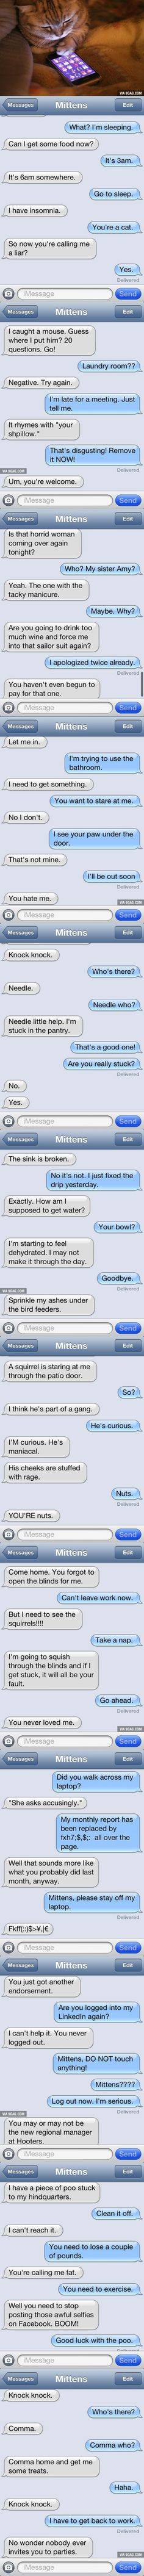 Text Messages From A Cat - these are hilarious!